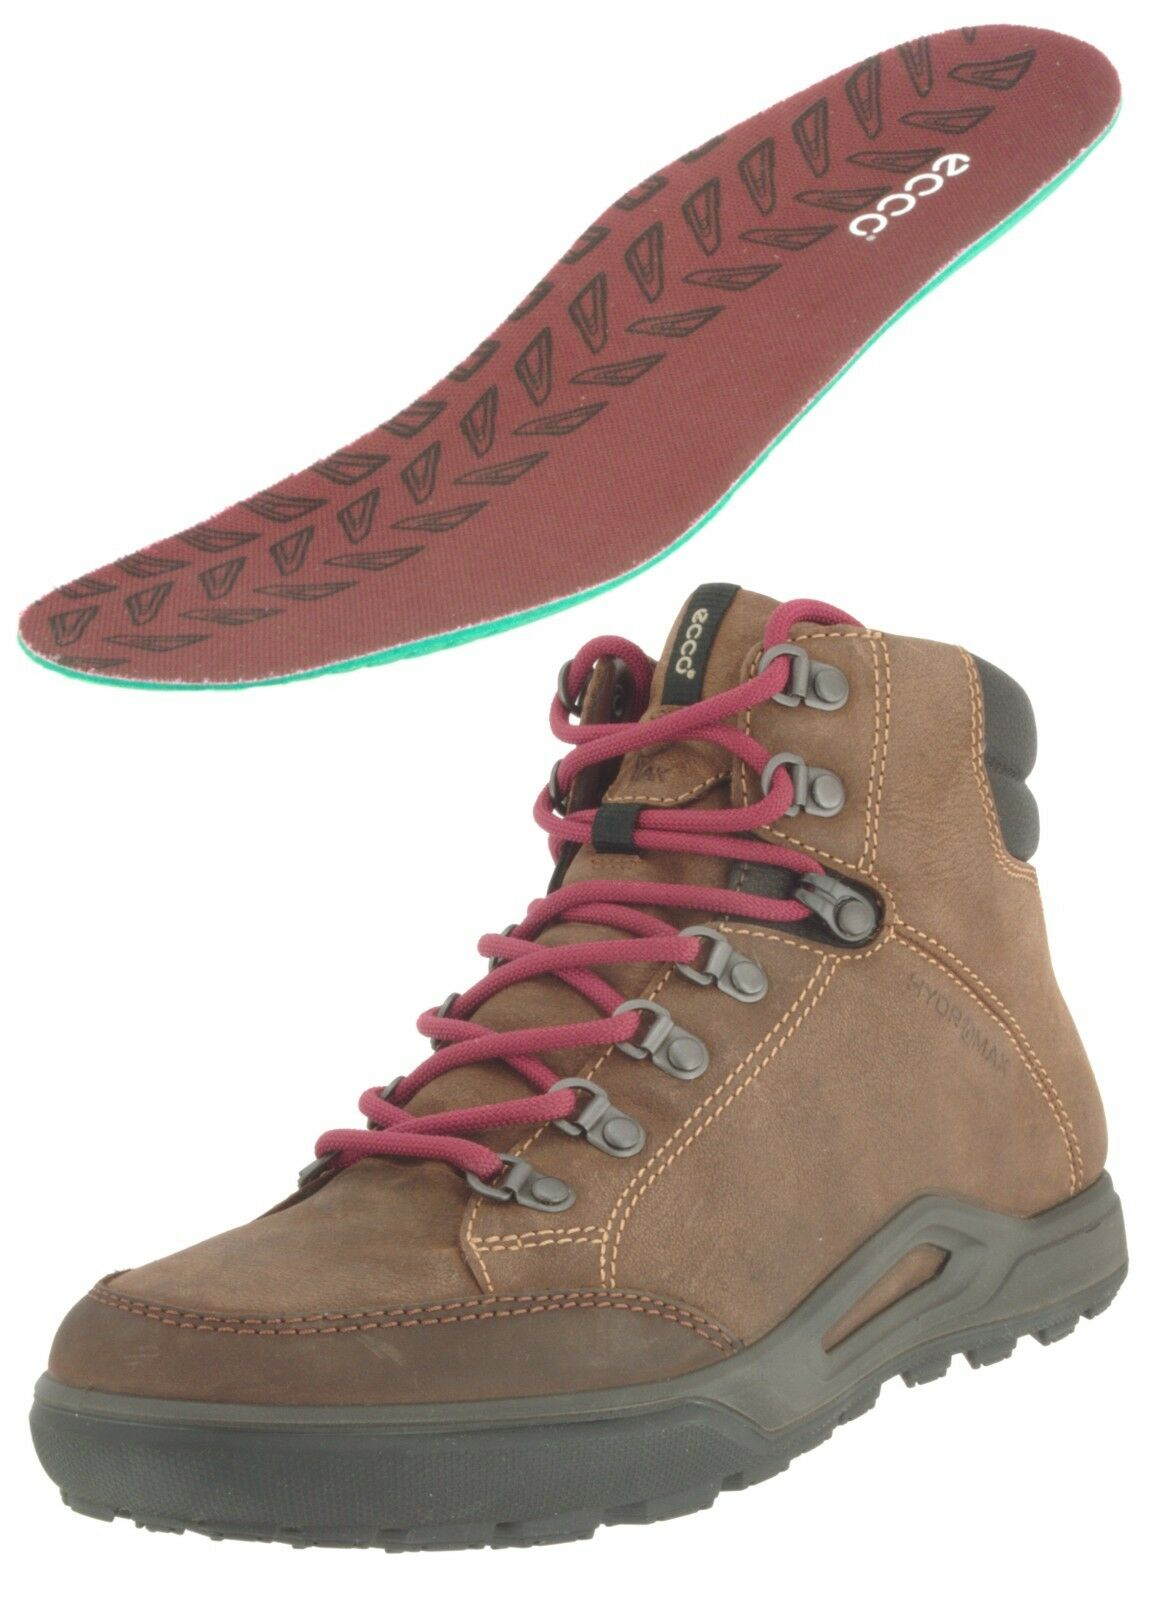 ECCO 833514 MEN'S LOCARNO LEATHER HIKING CASUAL  TRAIL MID BOOT US 7-7.5,  with cheap price to get top brand